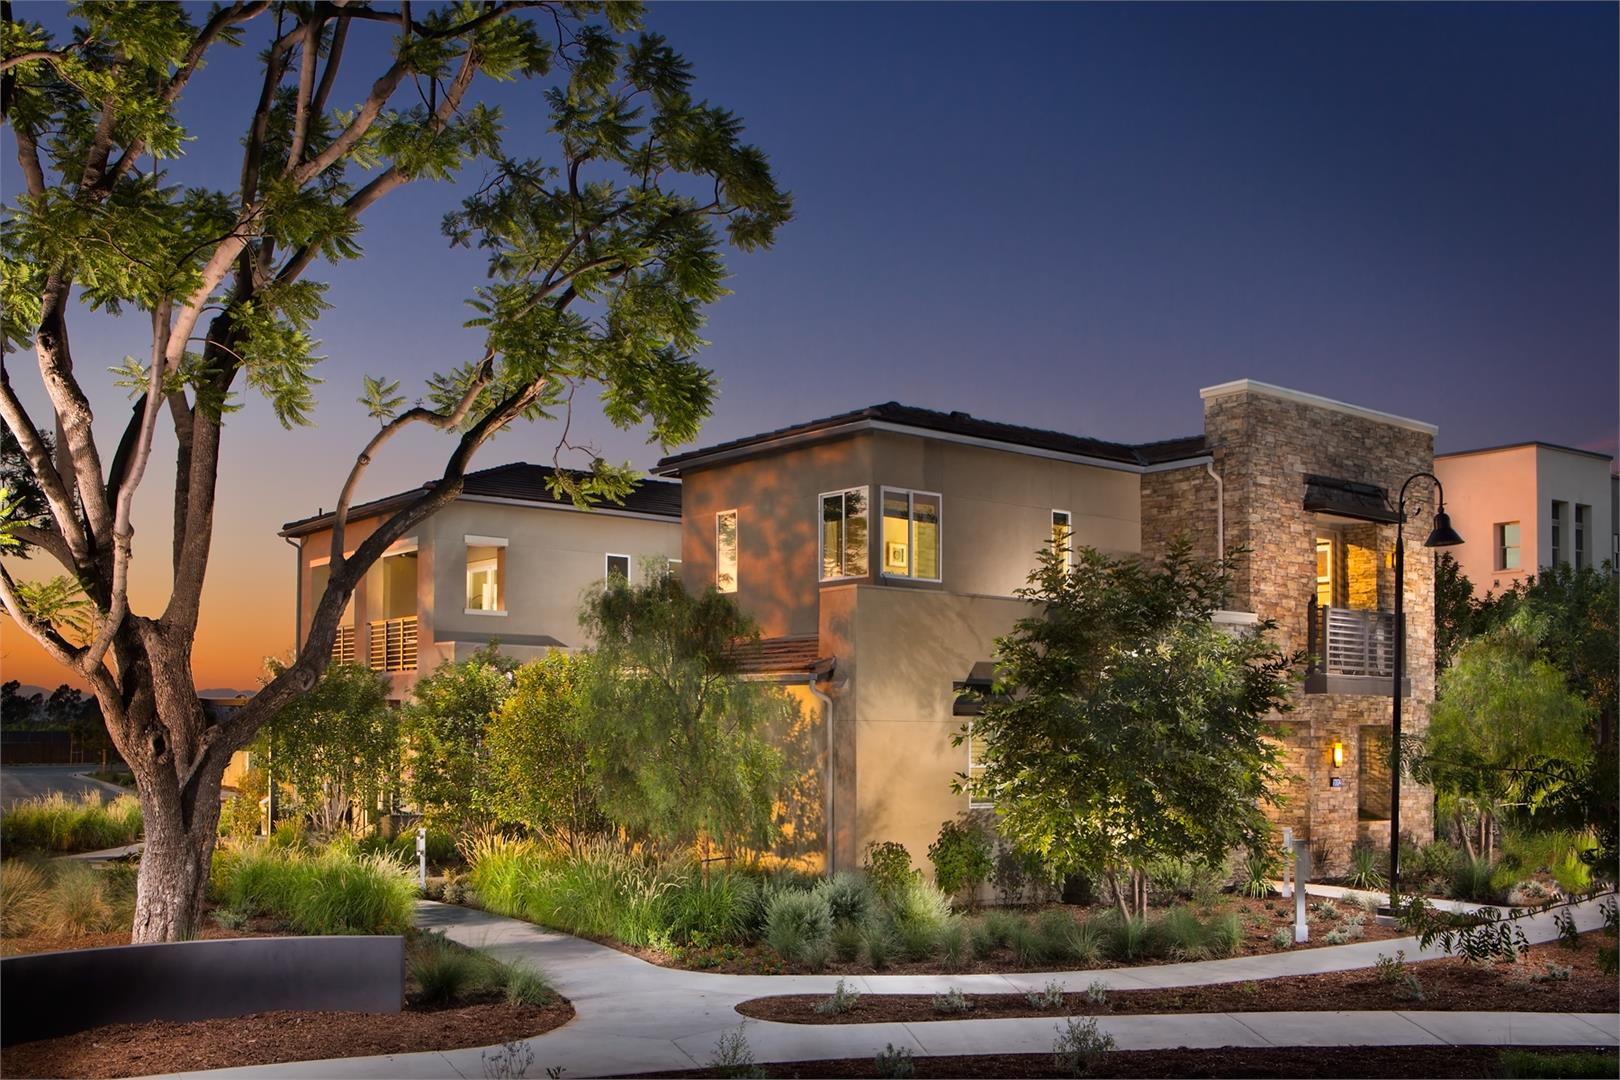 Beacon Park - Brio in Irvine, CA | Prices, Plans, Availability on home depot southern california, barratt american southern california, toll brothers southern california, kb home southern california,